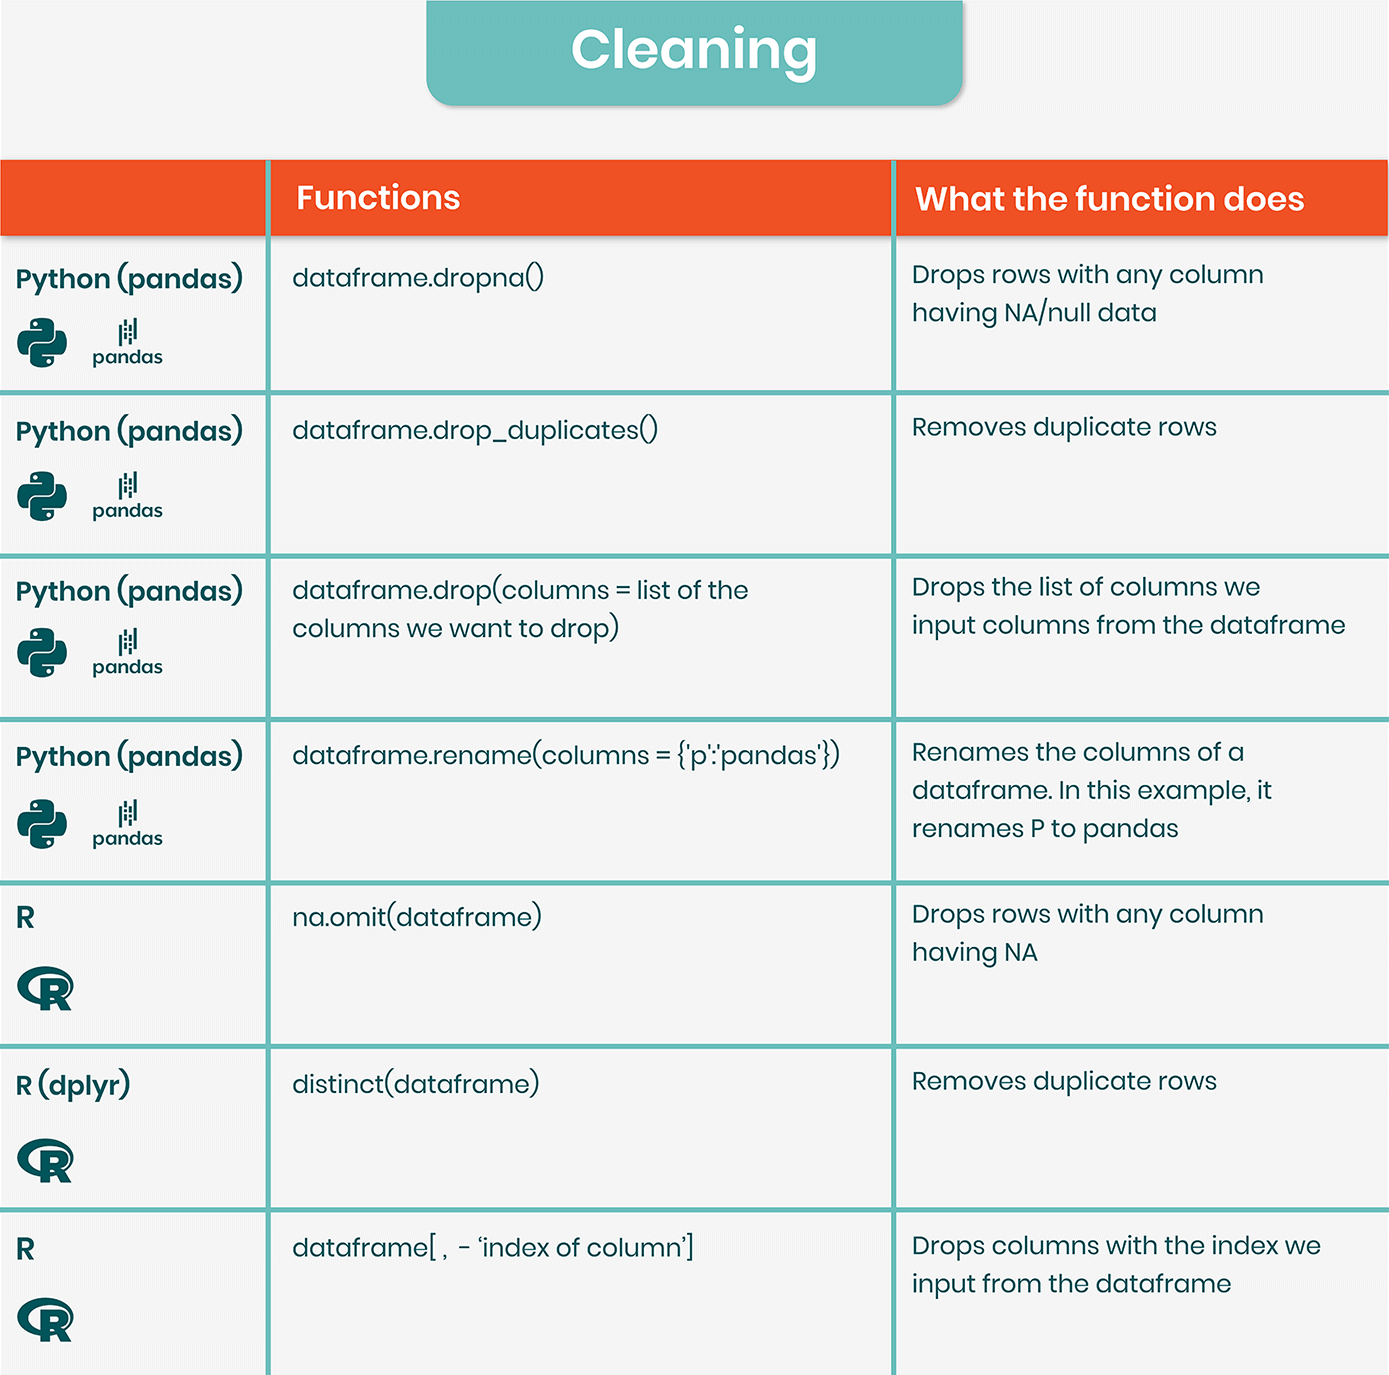 Data wrangling cheat sheet: data cleaning with Python and R